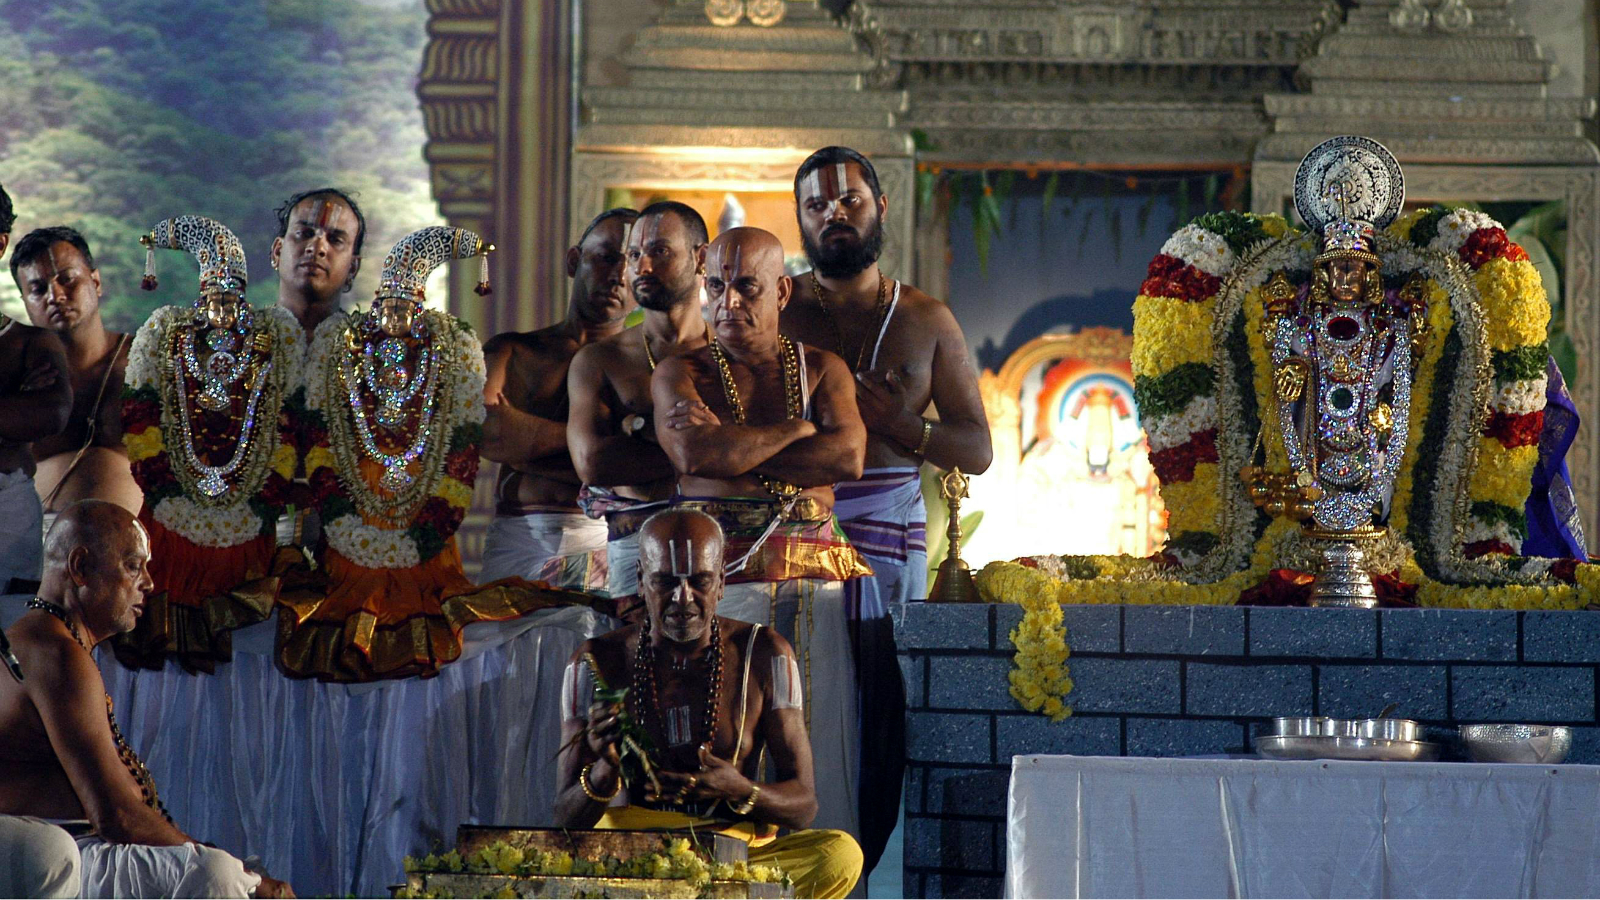 Hindu priests perform ritual prayers near the idols of Lord Balaji, right, and Goddess Padmawati and Bhu Devi, left, at a makeshift temple in Mumbai, India, Saturday, Dec. 2, 2006. The idols of Lord Balaji and Goddess Padmavati were brought from the Tirumala Tirupati Devasthanam to Mumbai for their traditional wedding ritual, in an event hosted by the South Indian Education Society.